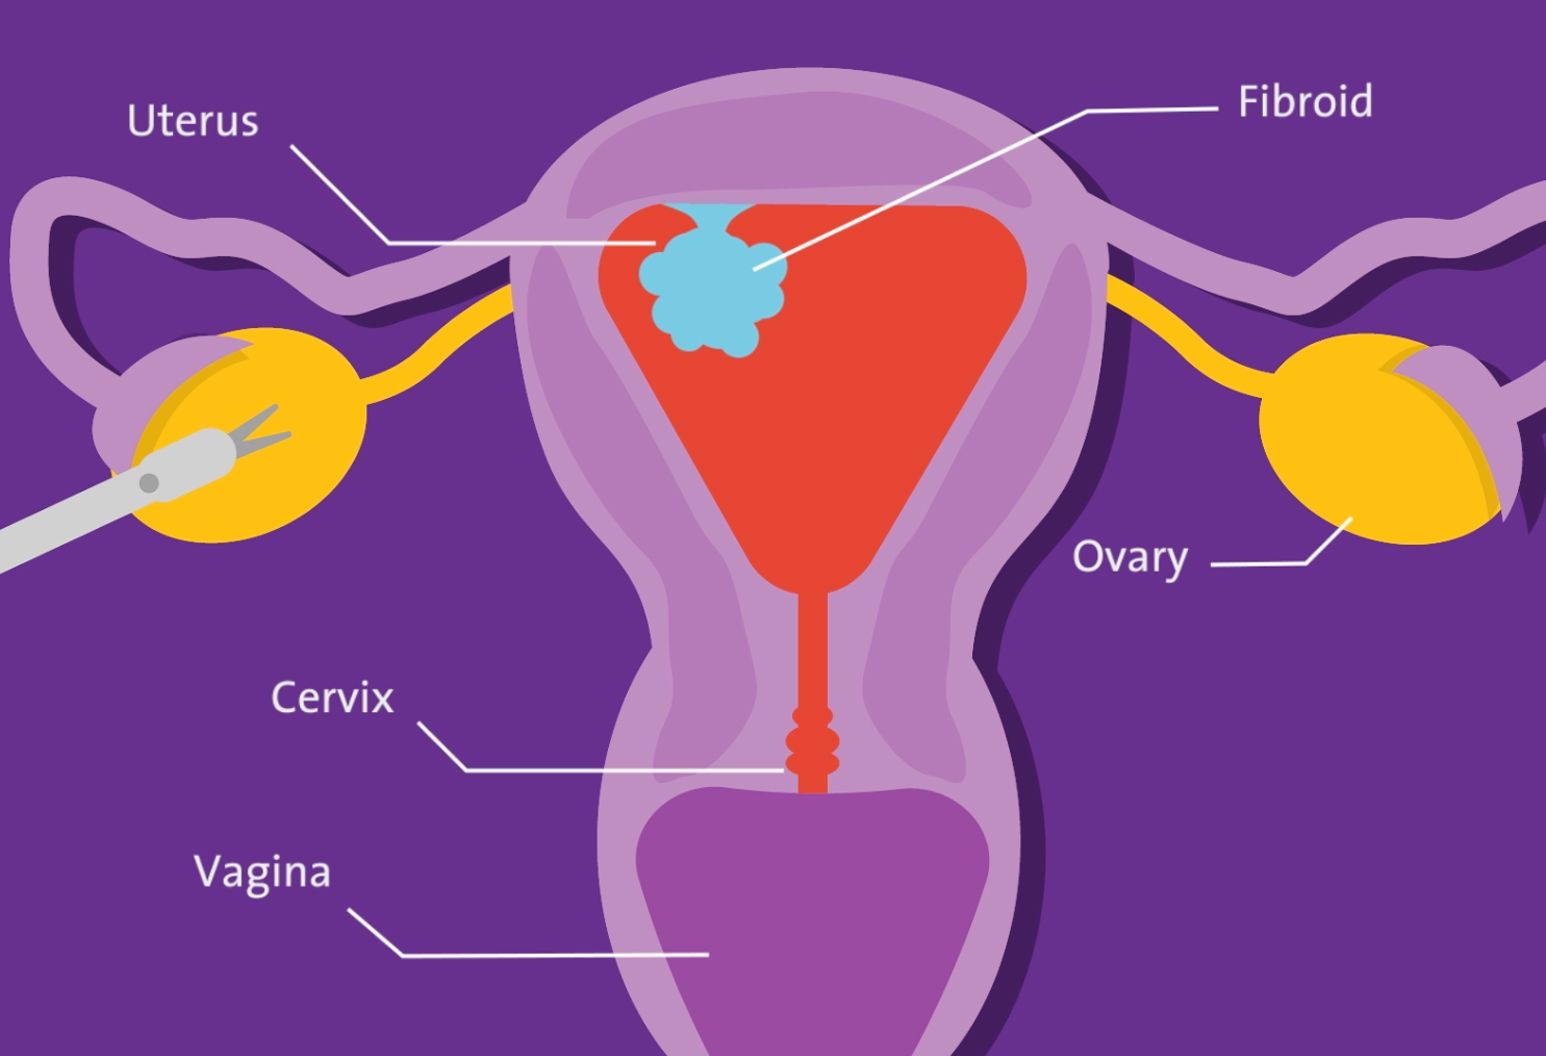 Illustration of the female reproductive tract, highlighting the uterus, fibroid, ovary, cervix and vagina.